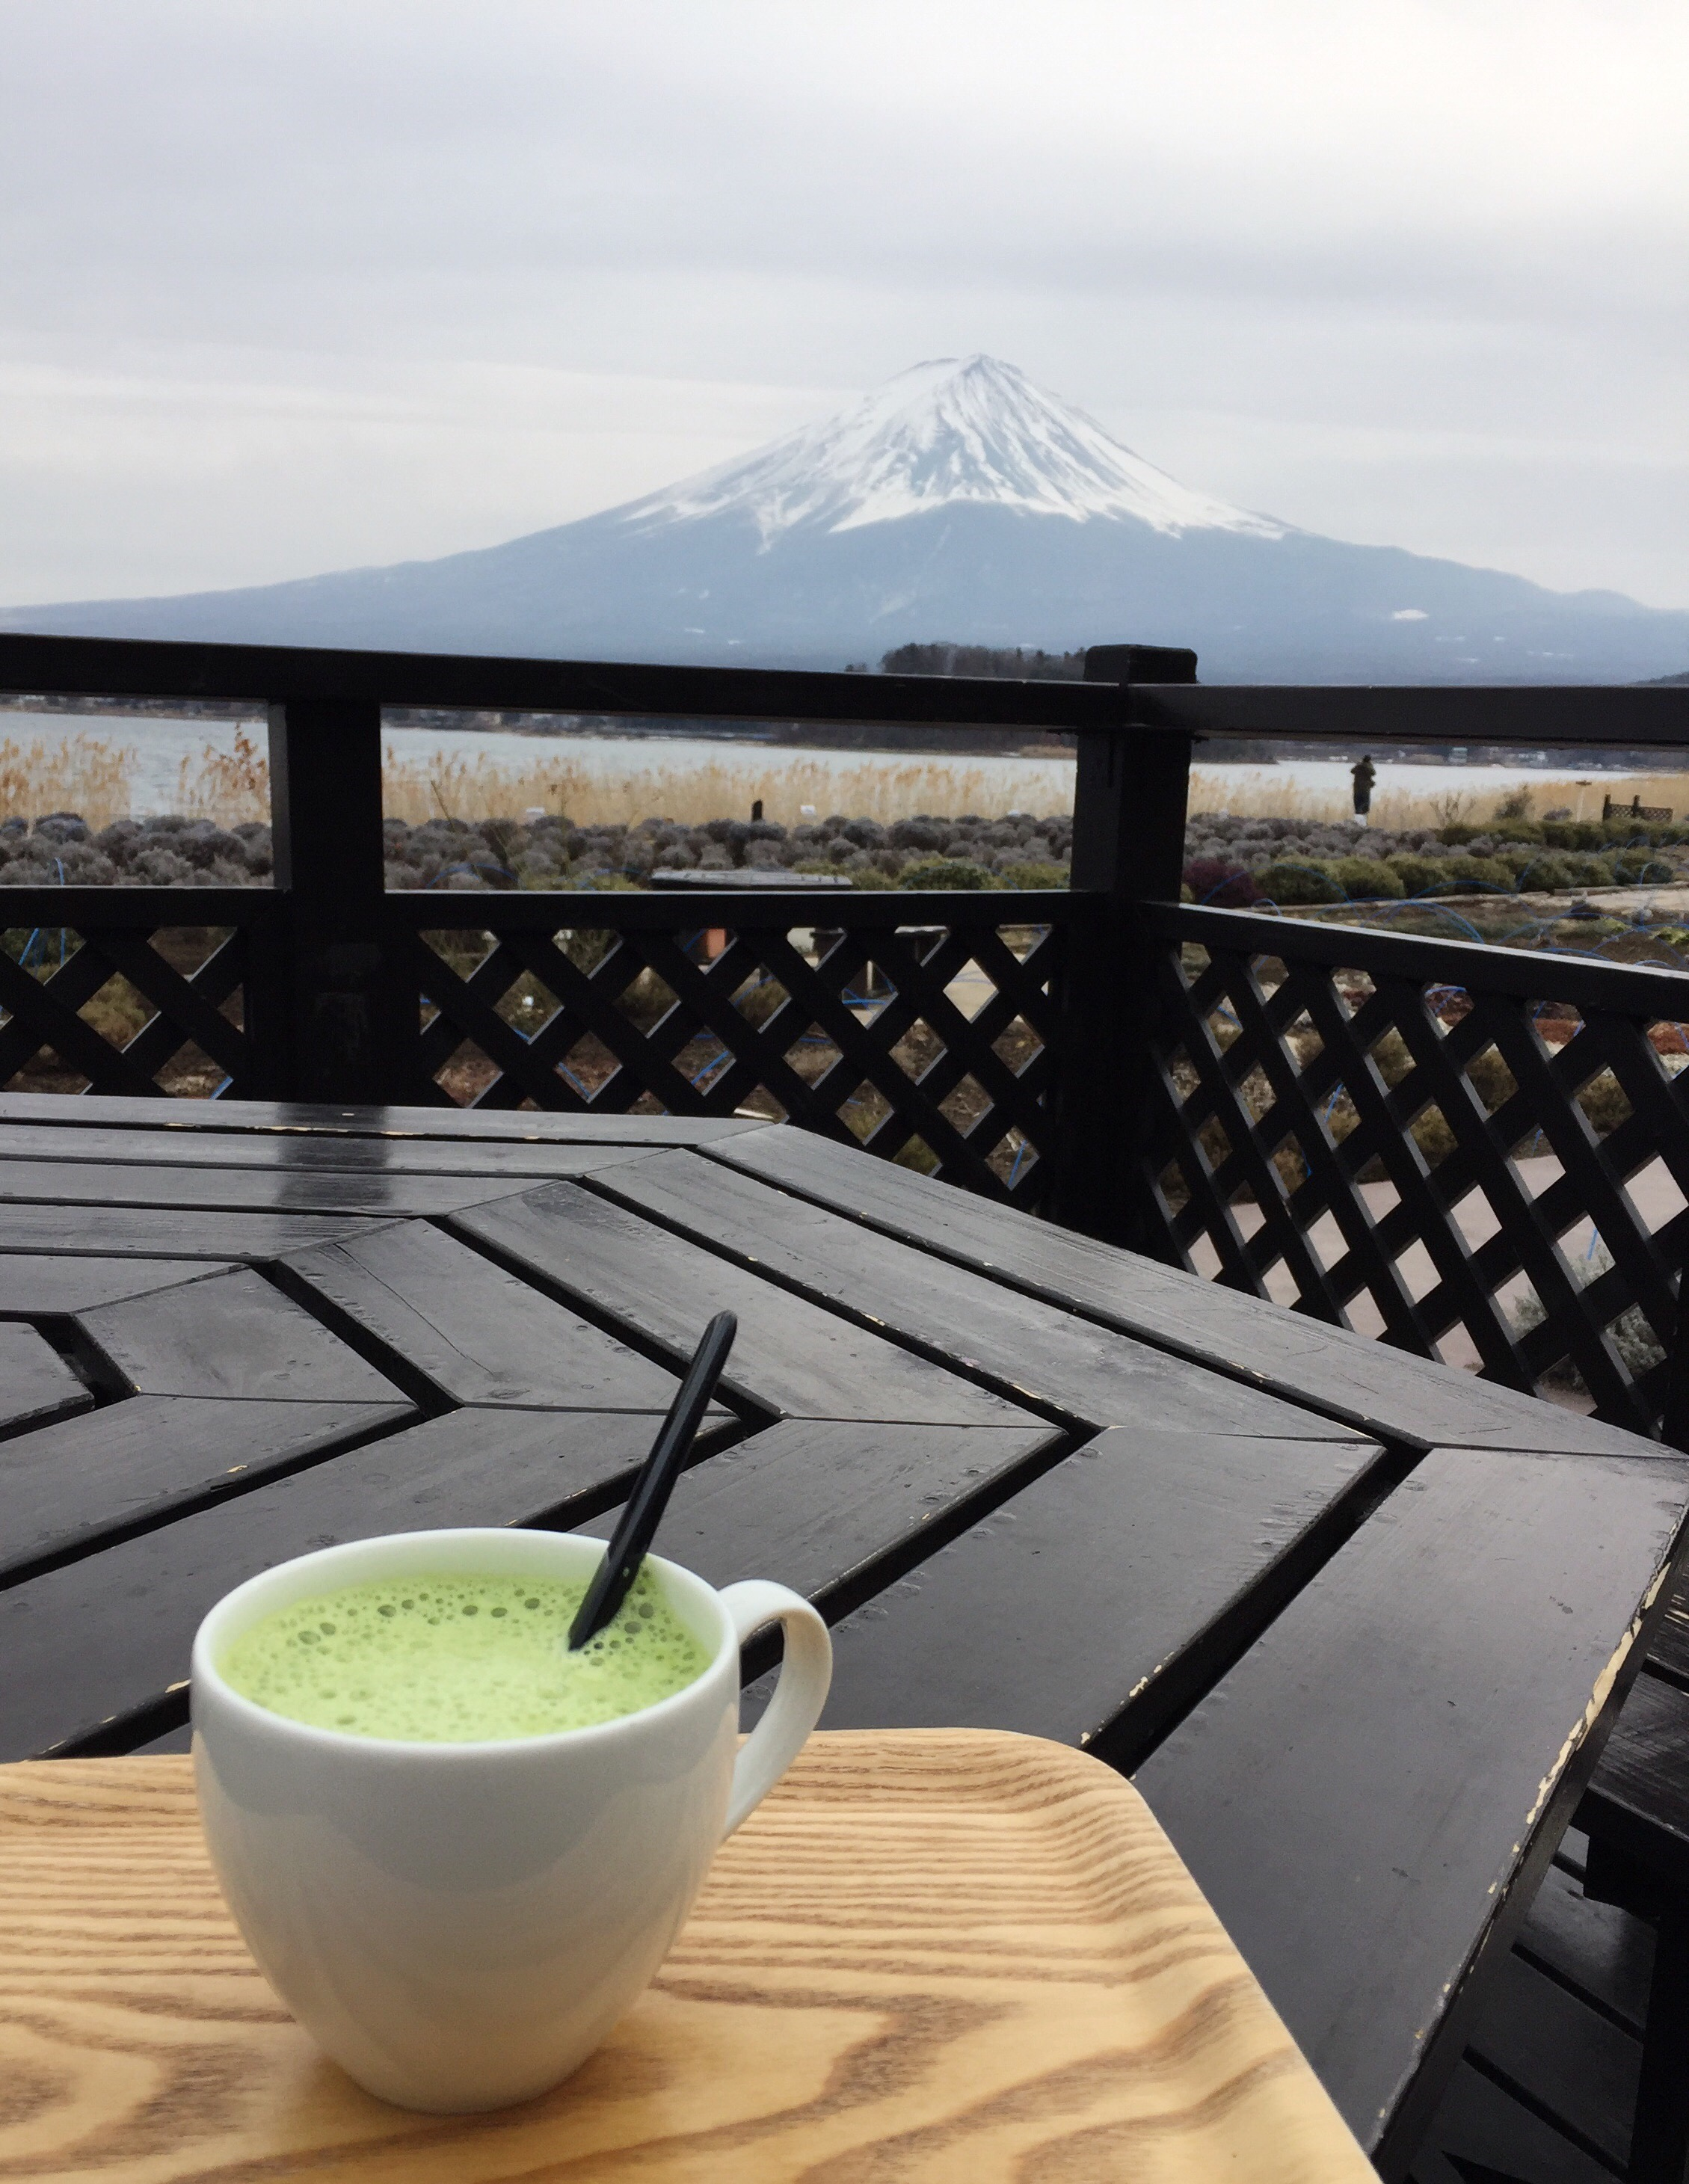 Walk through the neighborhoods and enjoy a matcha latte or a blueberry softee by the tourist center.